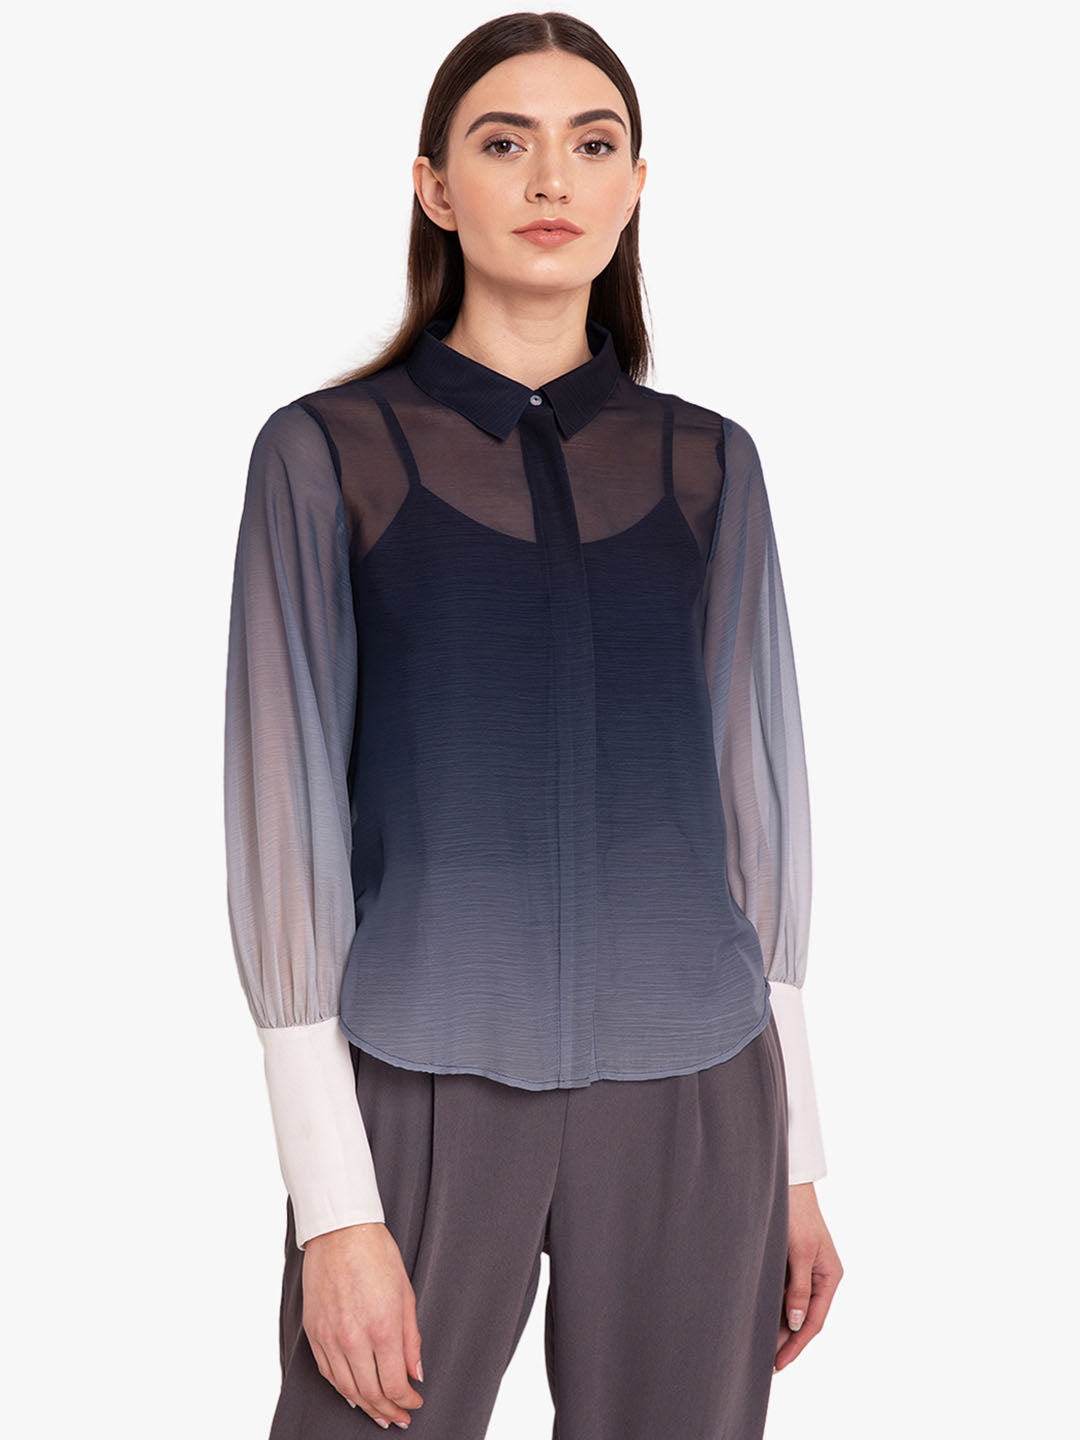 Ombre Chiffon Shirt With Exaggerated Cuff (Additional 20% OFF)